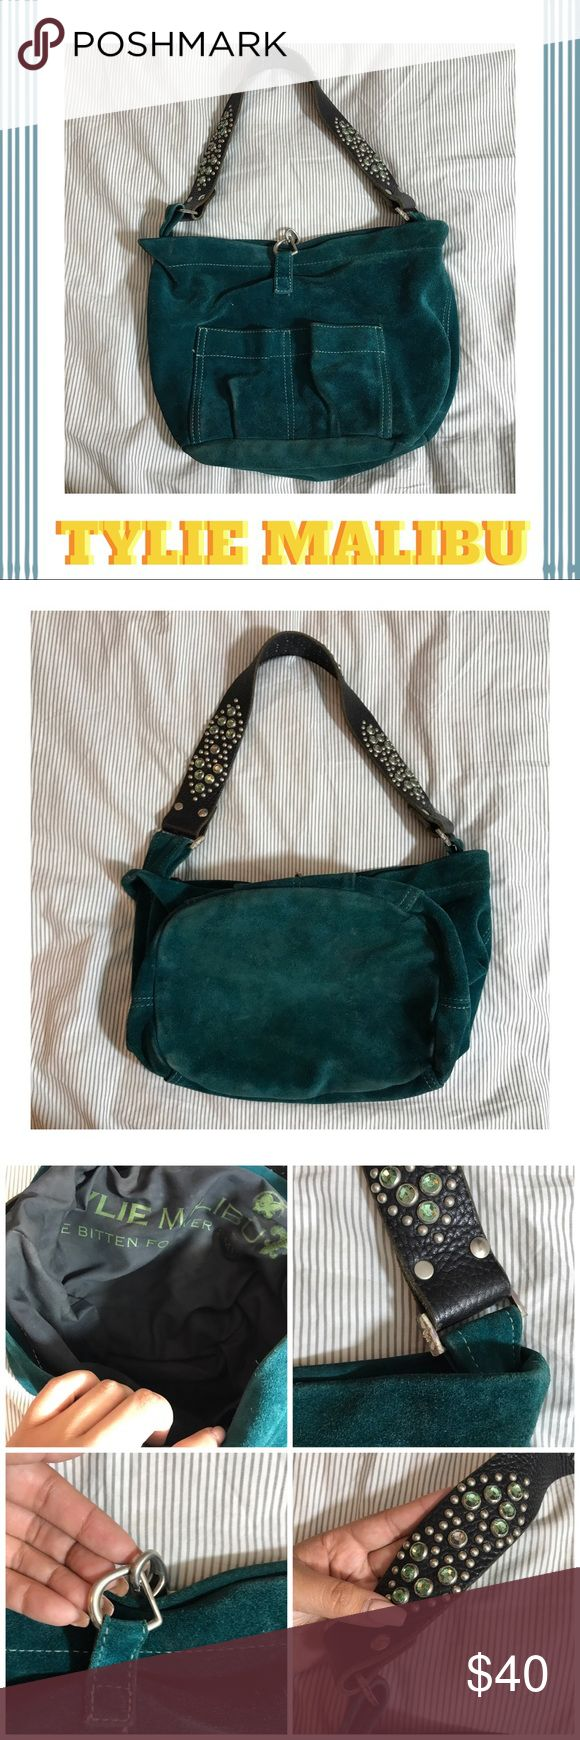 💙💚TYLIE MALIBU suede hobo 💙💚 What a gem ! Authentic TYLIE MALIBU real suede hobo 💚💙 embellished leather straps give it a boho rocker feel that demands attention ! Definitely loved with some dry cleaning needs . Priced accordingly ✌🏼 Tylie Malibu Bags Hobos